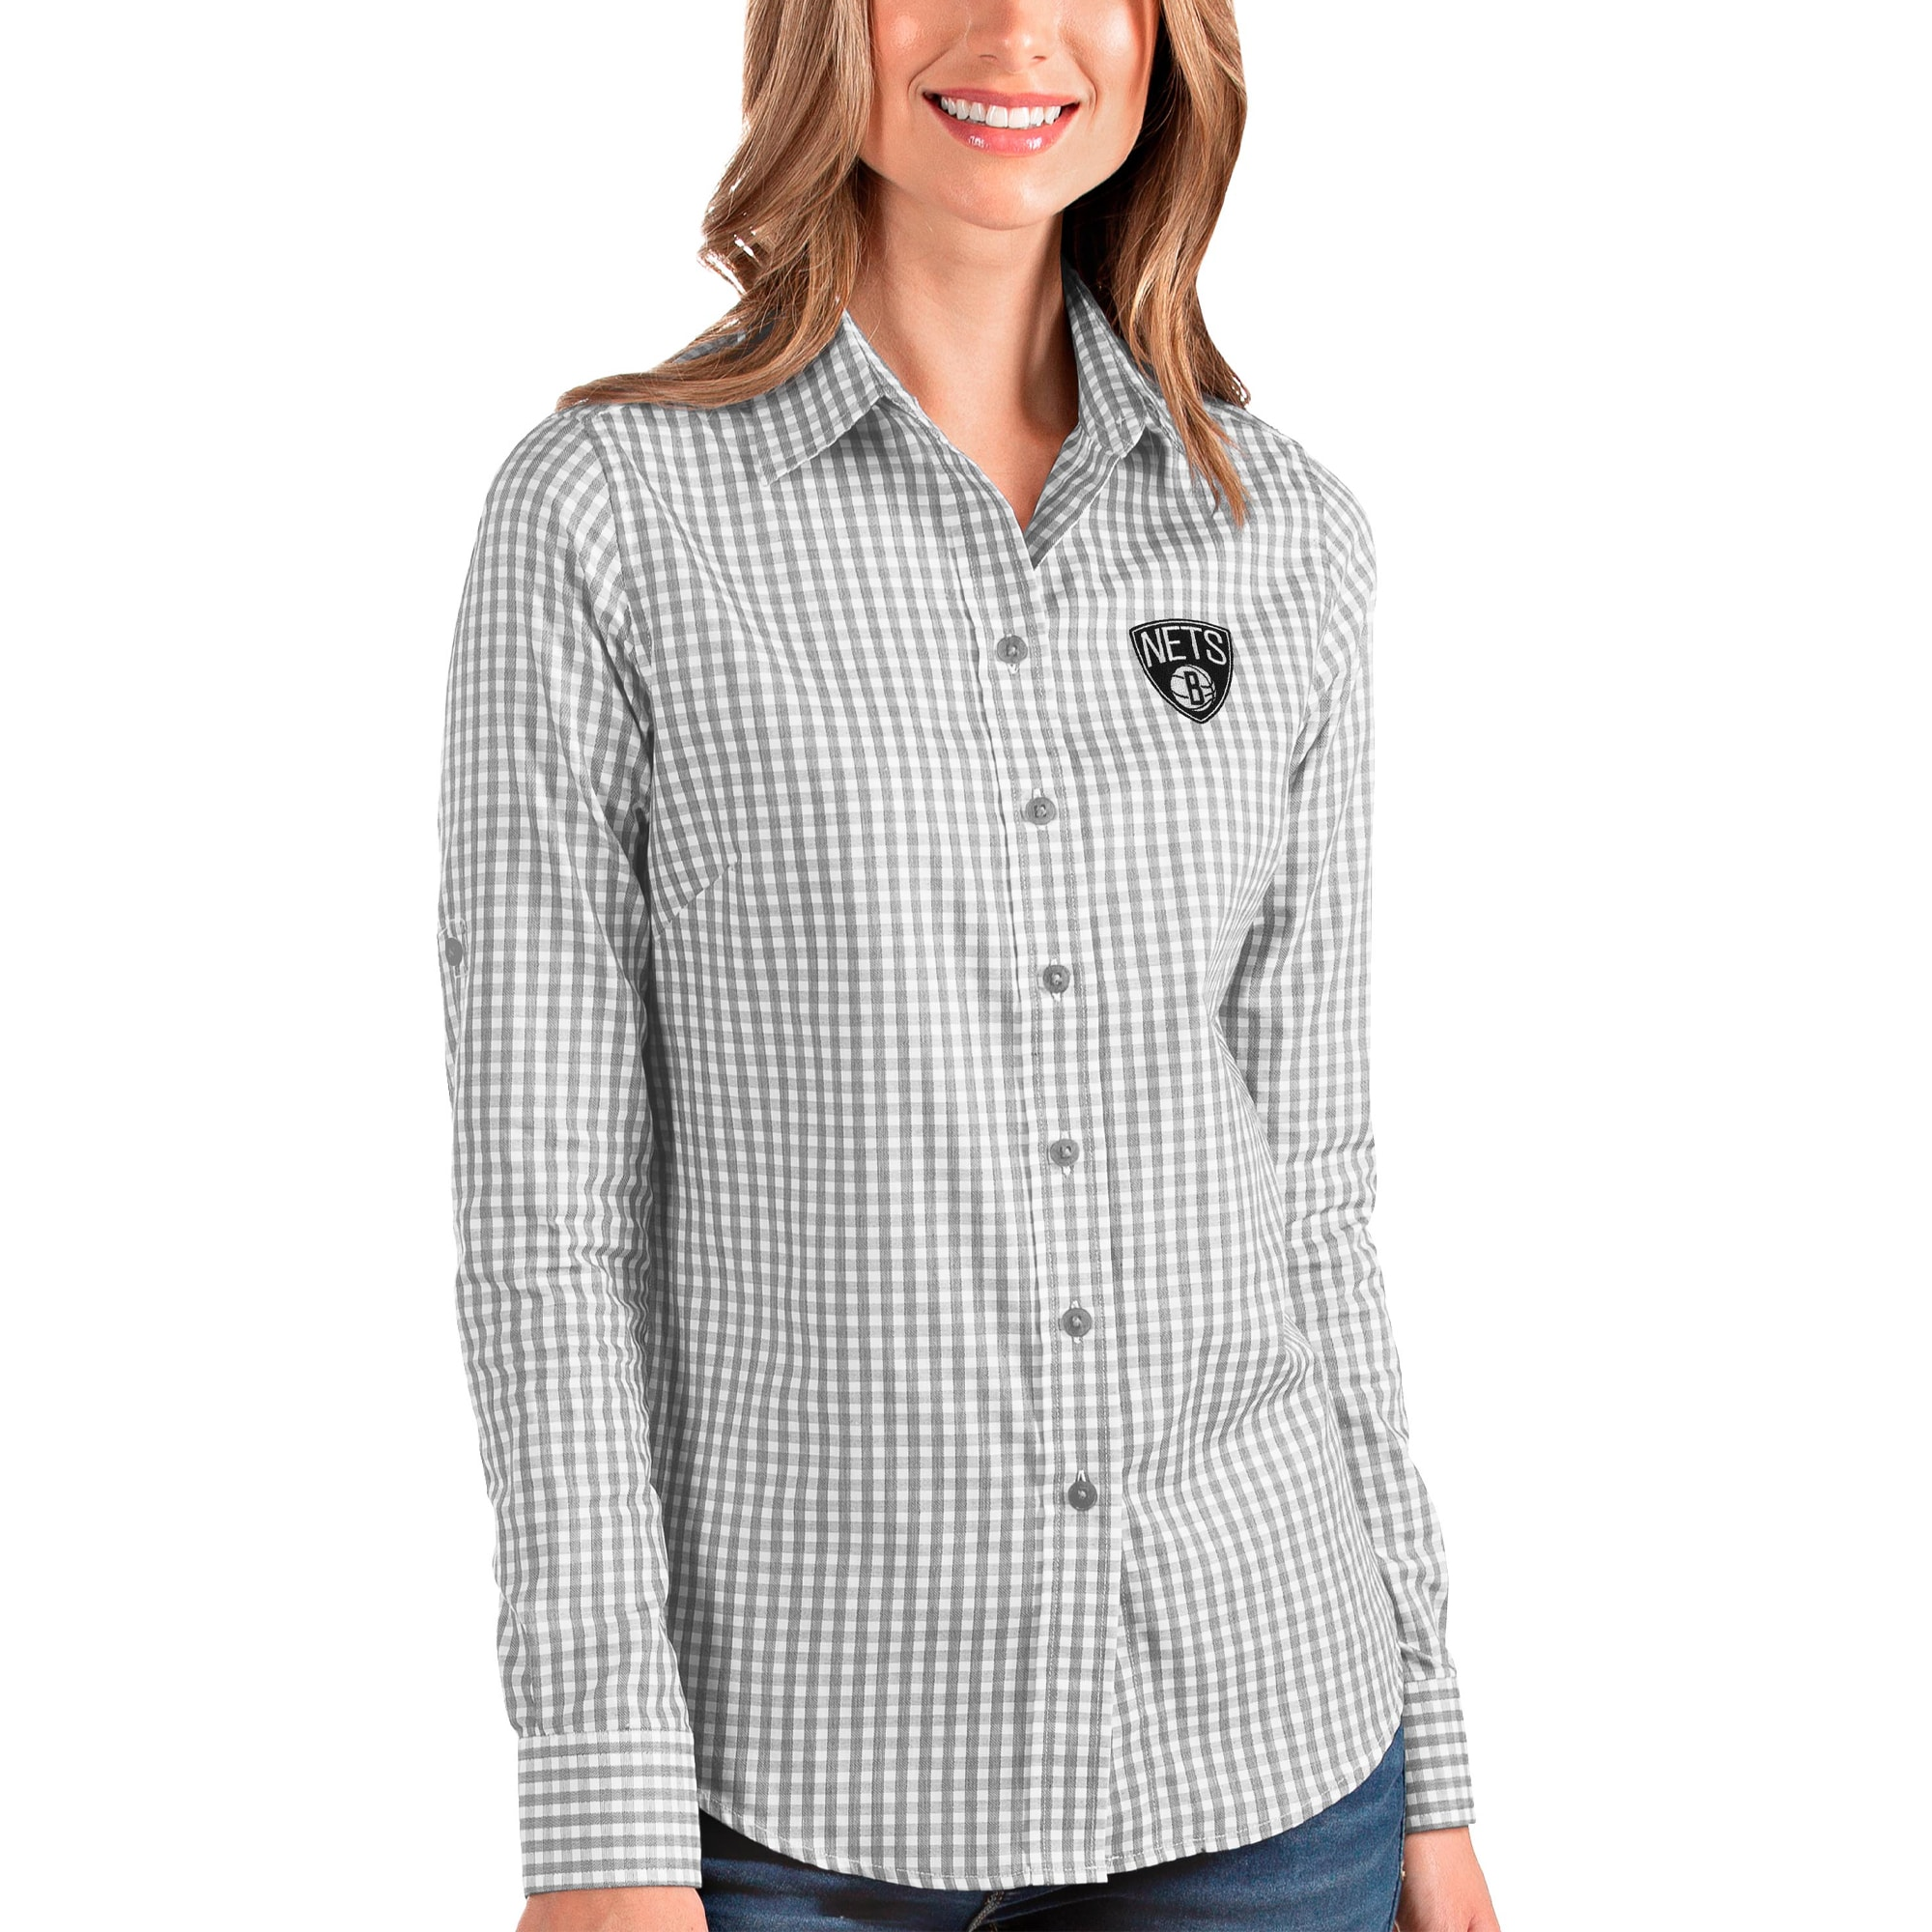 Brooklyn Nets Antigua Women's Structure Button-Up Long Sleeve Shirt - Charcoal/White